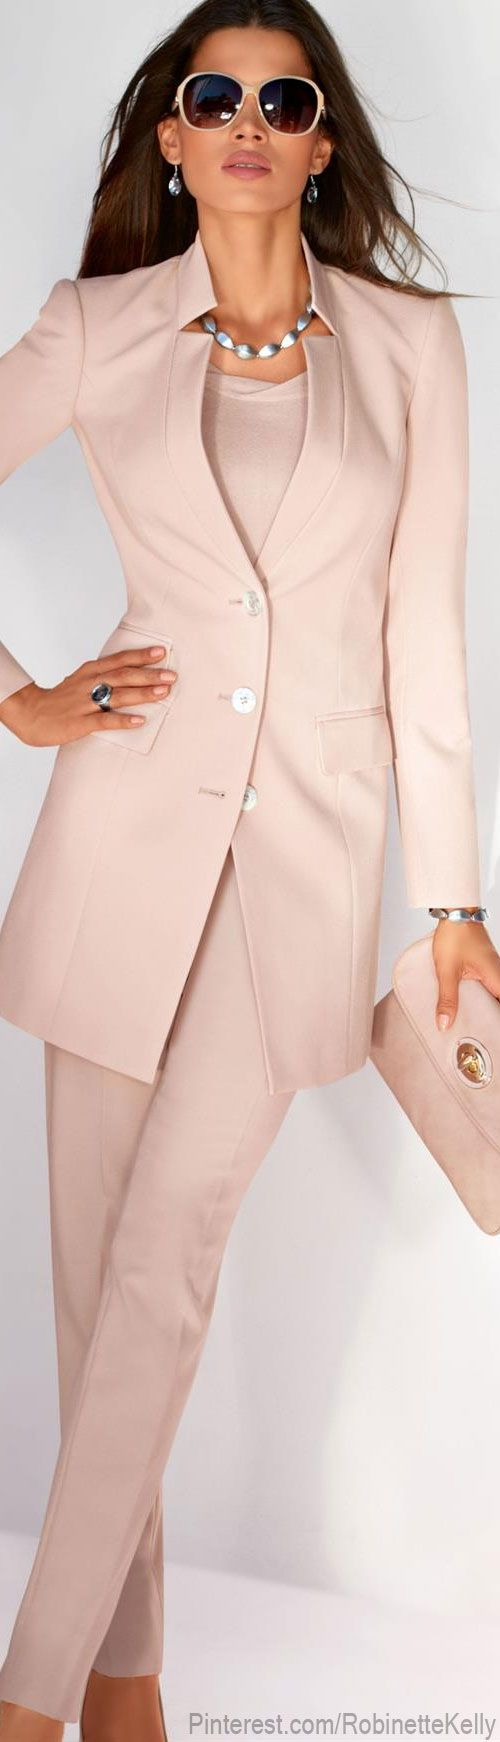 "Madeleine - It seems like Pants Suits with Longer Jackets are back ""in style"" Great colour for Spring..."